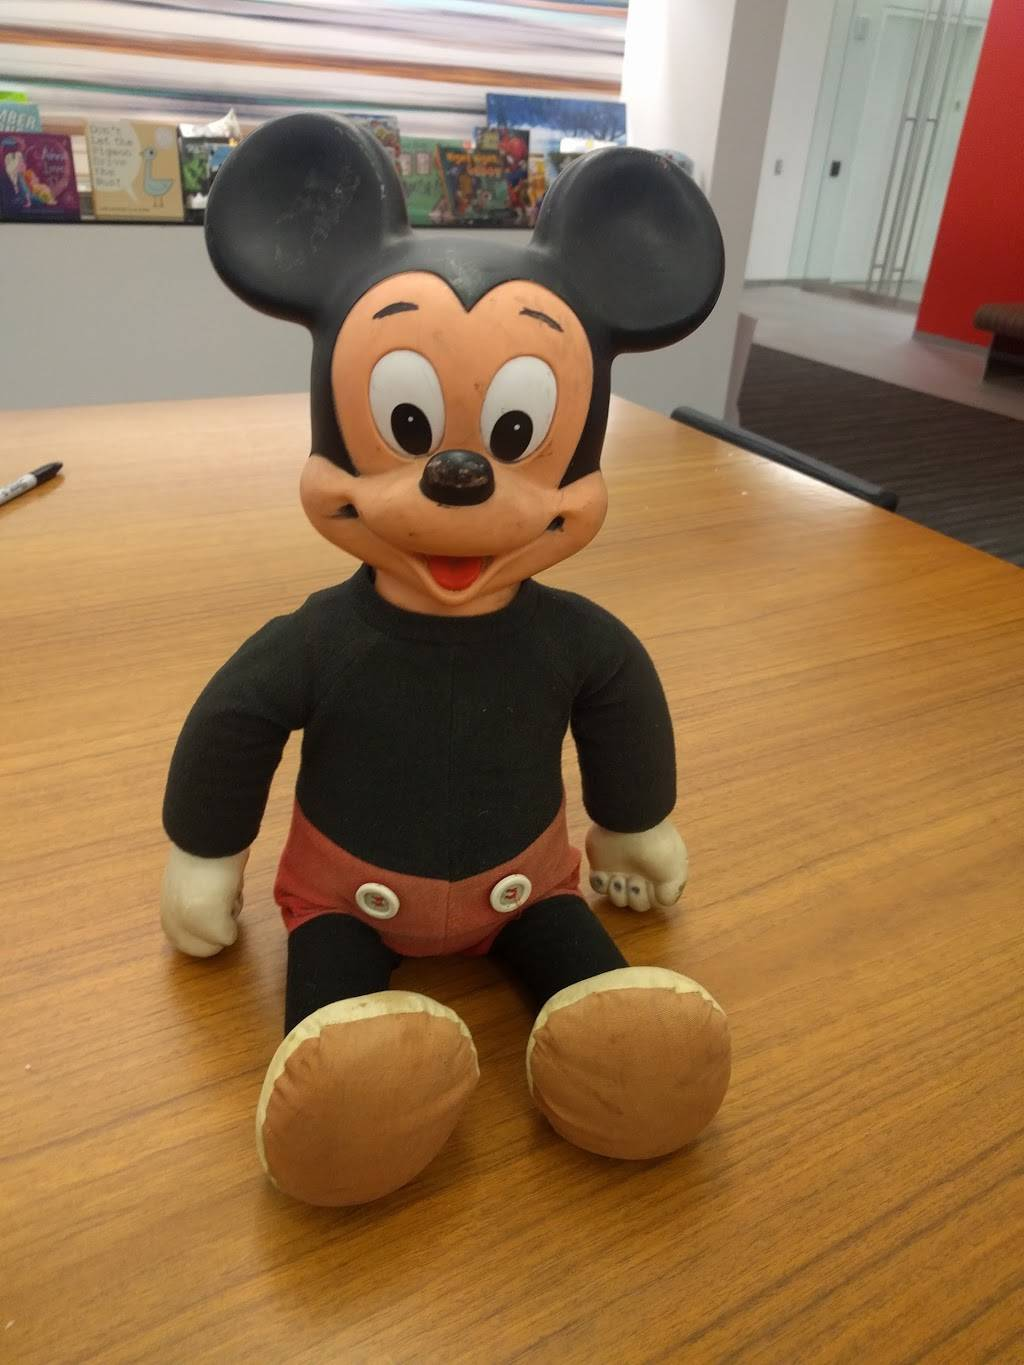 Disney ABC Cafeteria | restaurant | 125 West End Ave, New York, NY 10023, USA | 2124565357 OR +1 212-456-5357